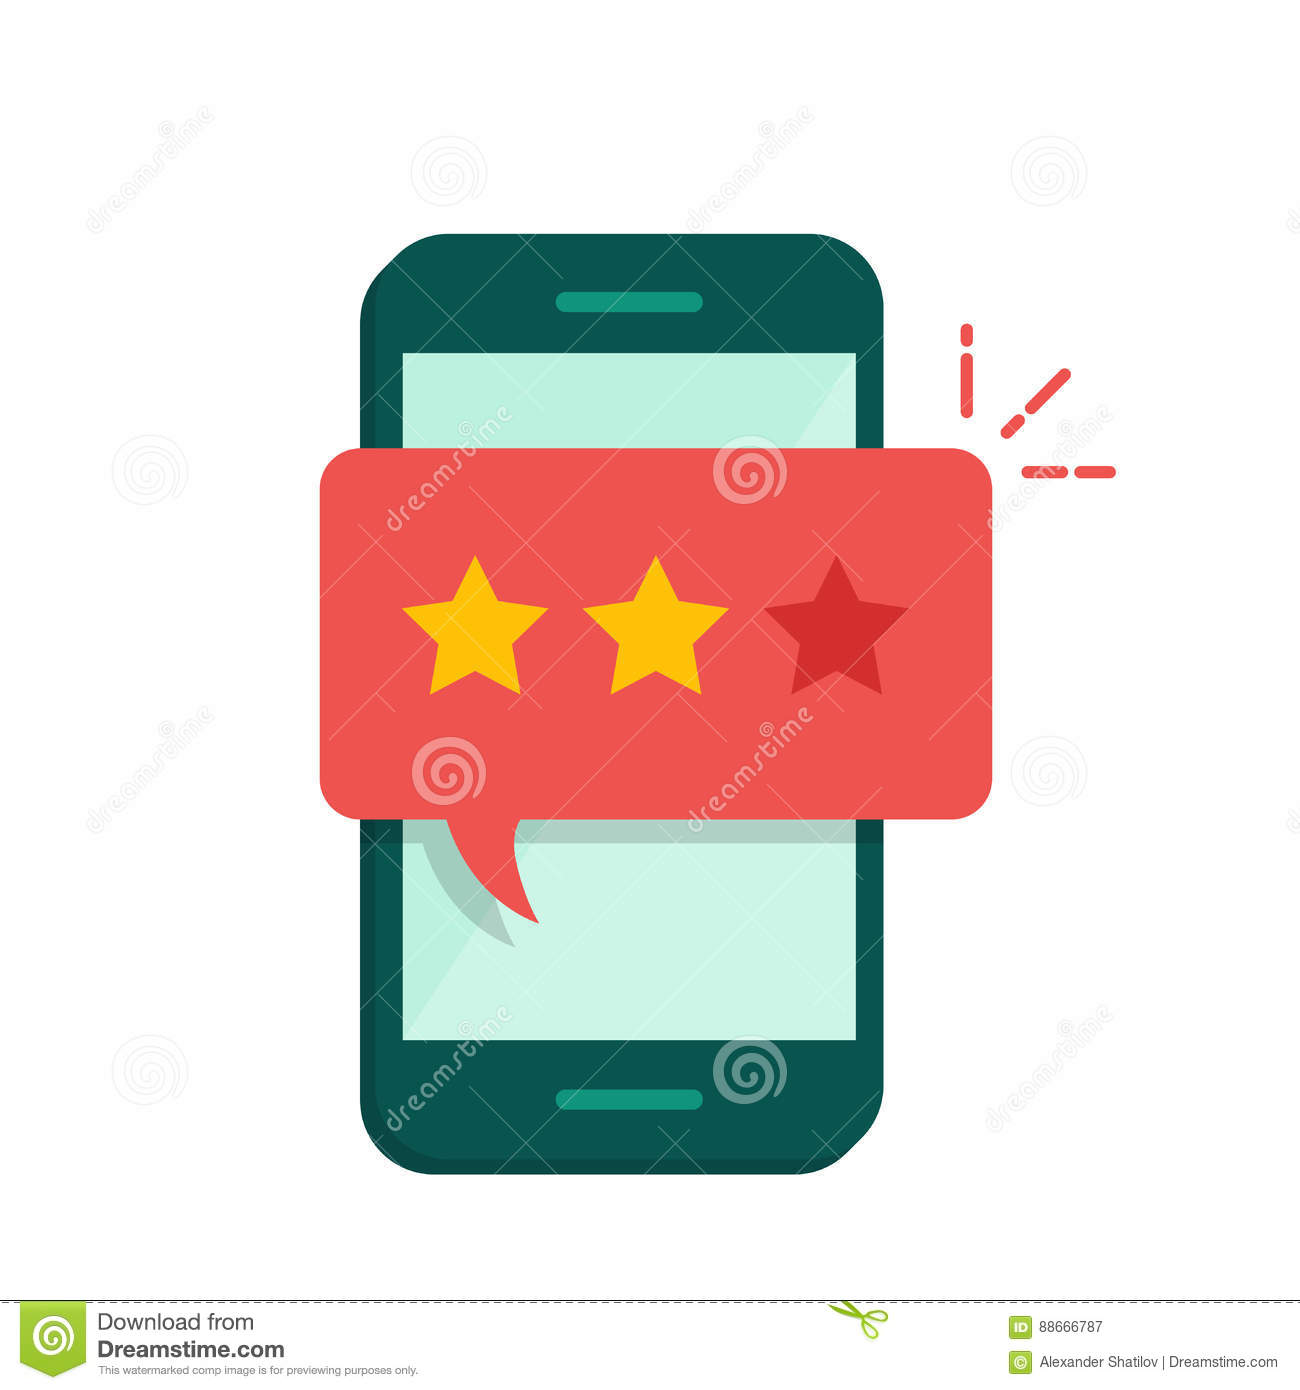 Pop-up Dialog Box On The Mobile Phone With A Suggestion To